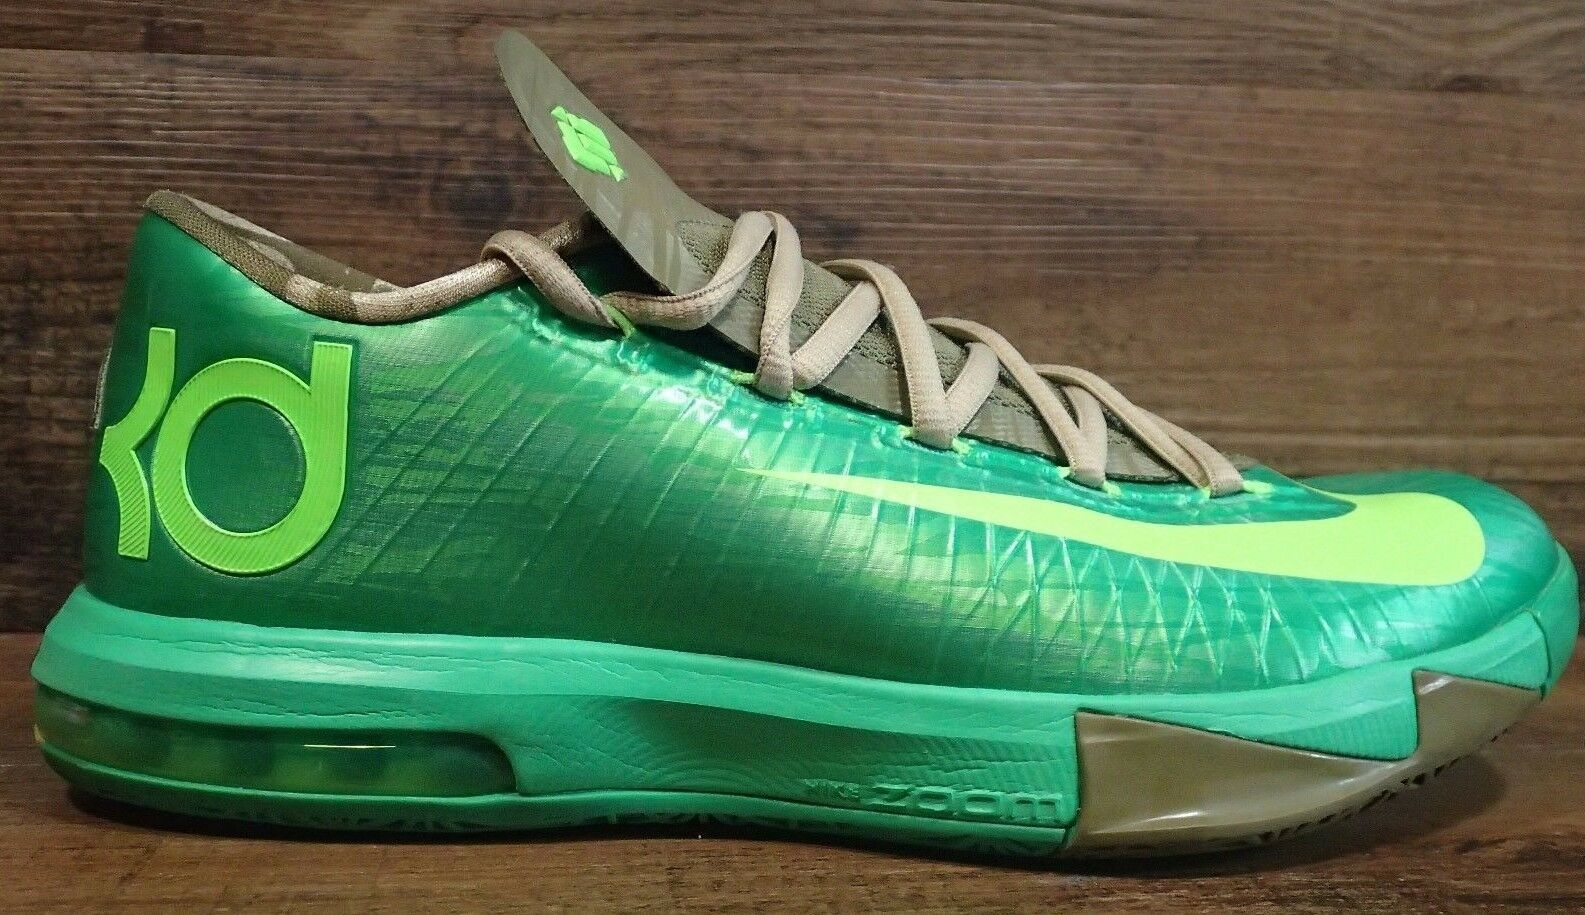 NIKE MENS KD KEVIN DURANT 6 SHOES FLASH LIME BAMBOO BASKETBALL SHOES 6 599424 301 SZ 8 23c050